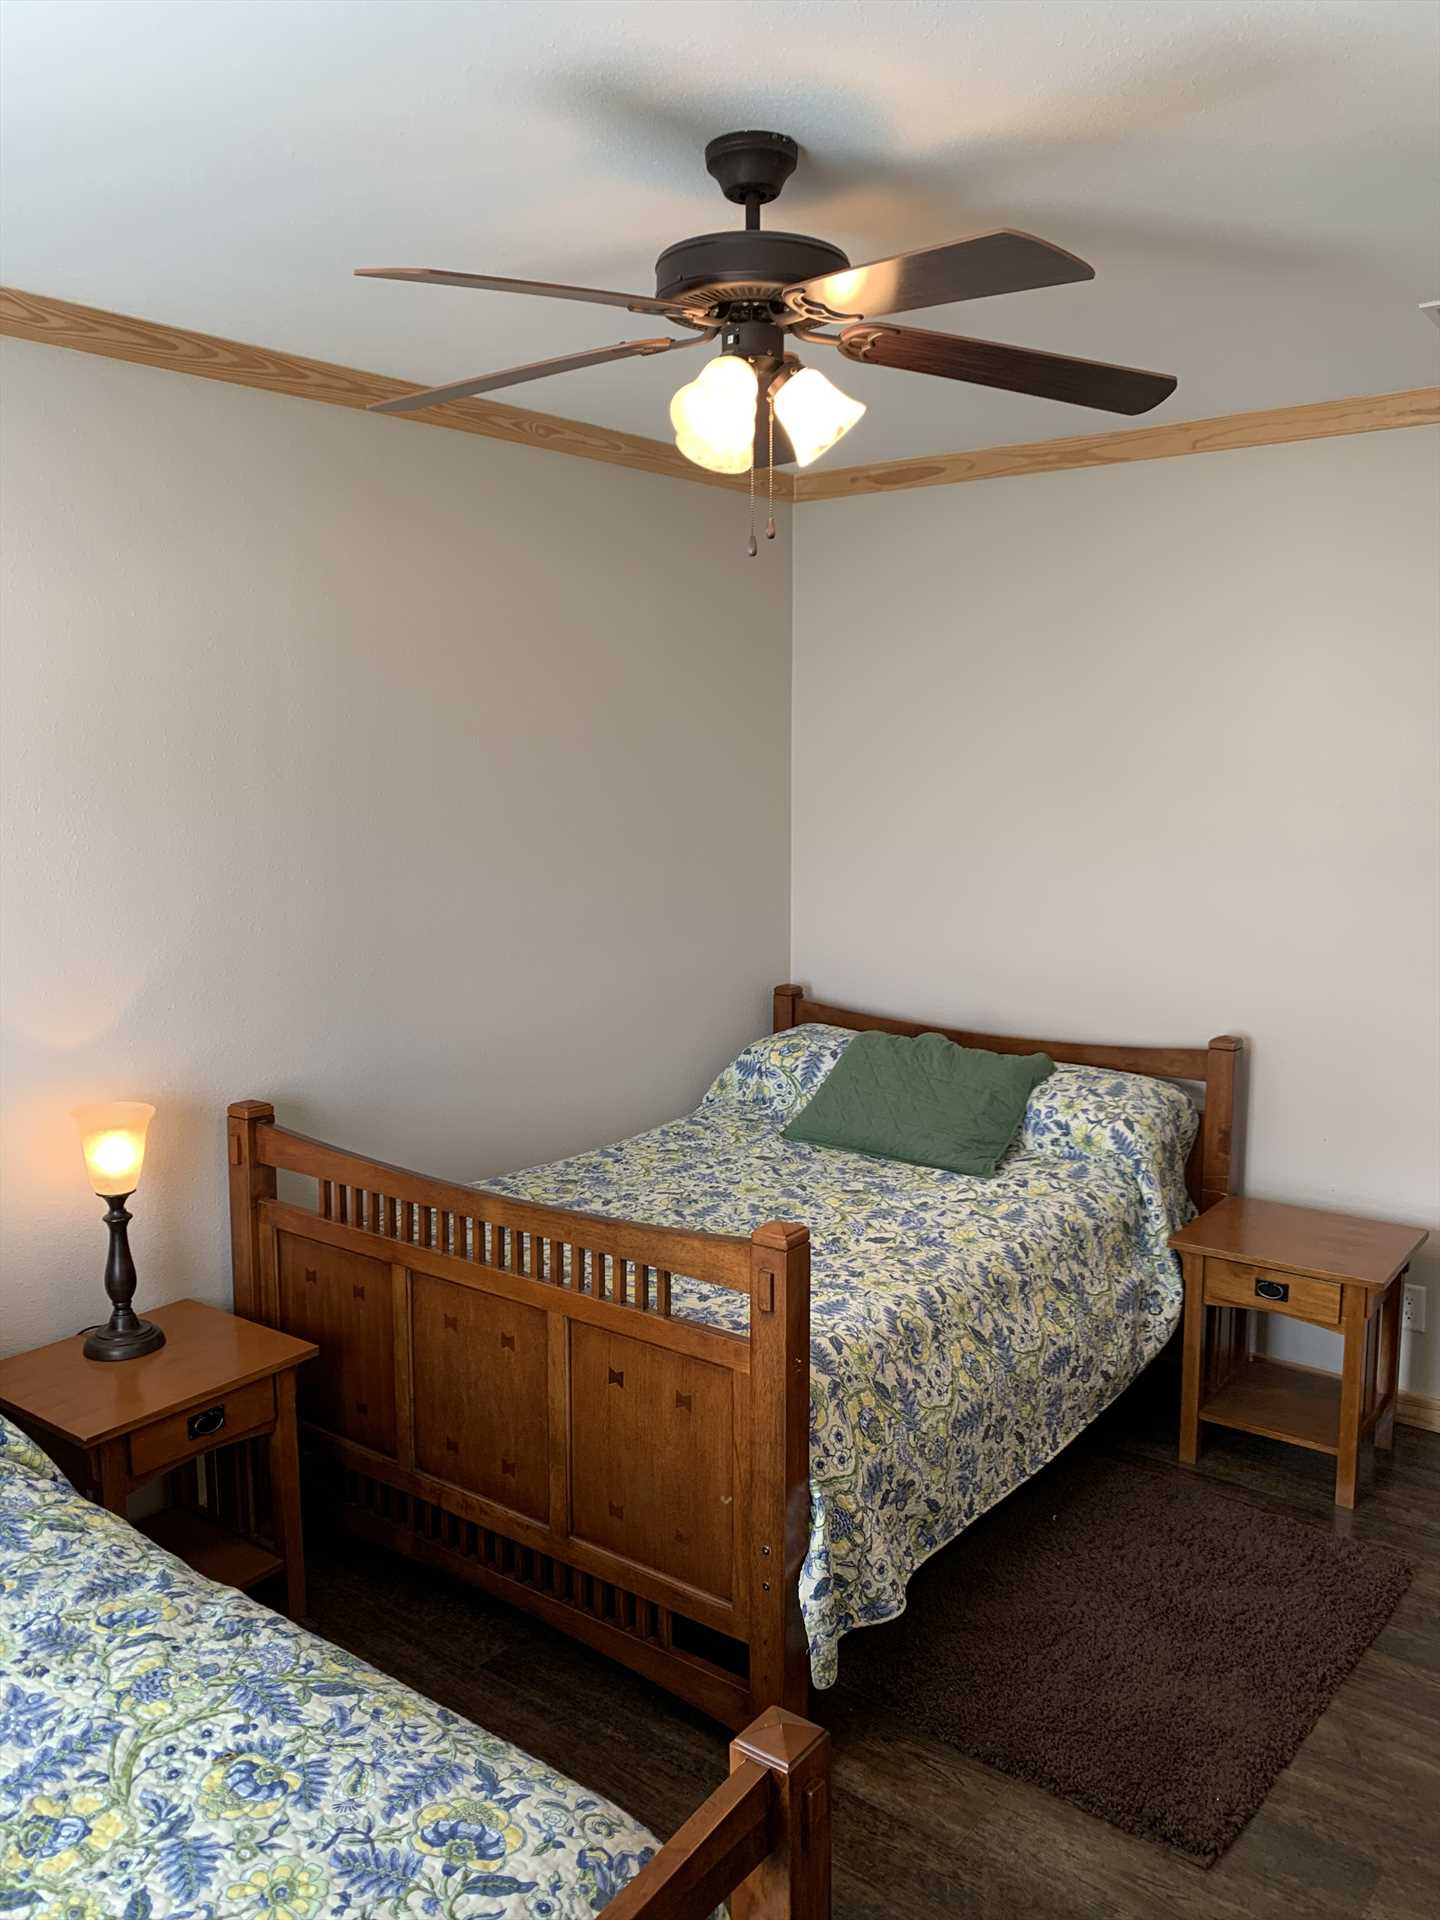 The second bedroom has two double beds that are not only matched, but feature matching furnishings, as well. It's a comfy and quiet place to catch your forty winks.